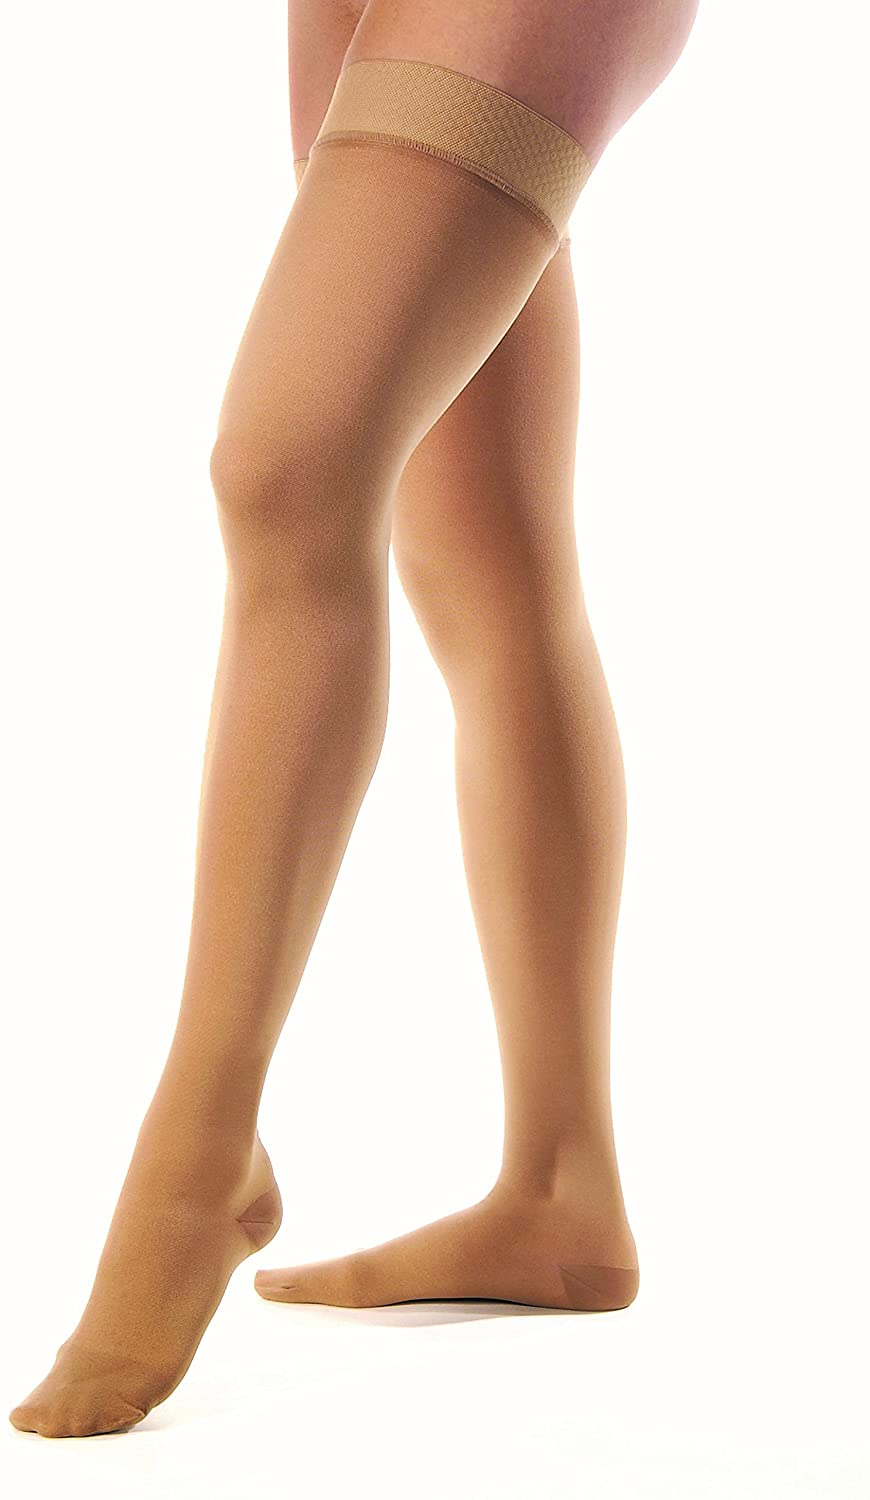 JOBST Relief Compression Stockings, 30-40 mmHg, Thigh High, Closed Toe, Beige, Medium